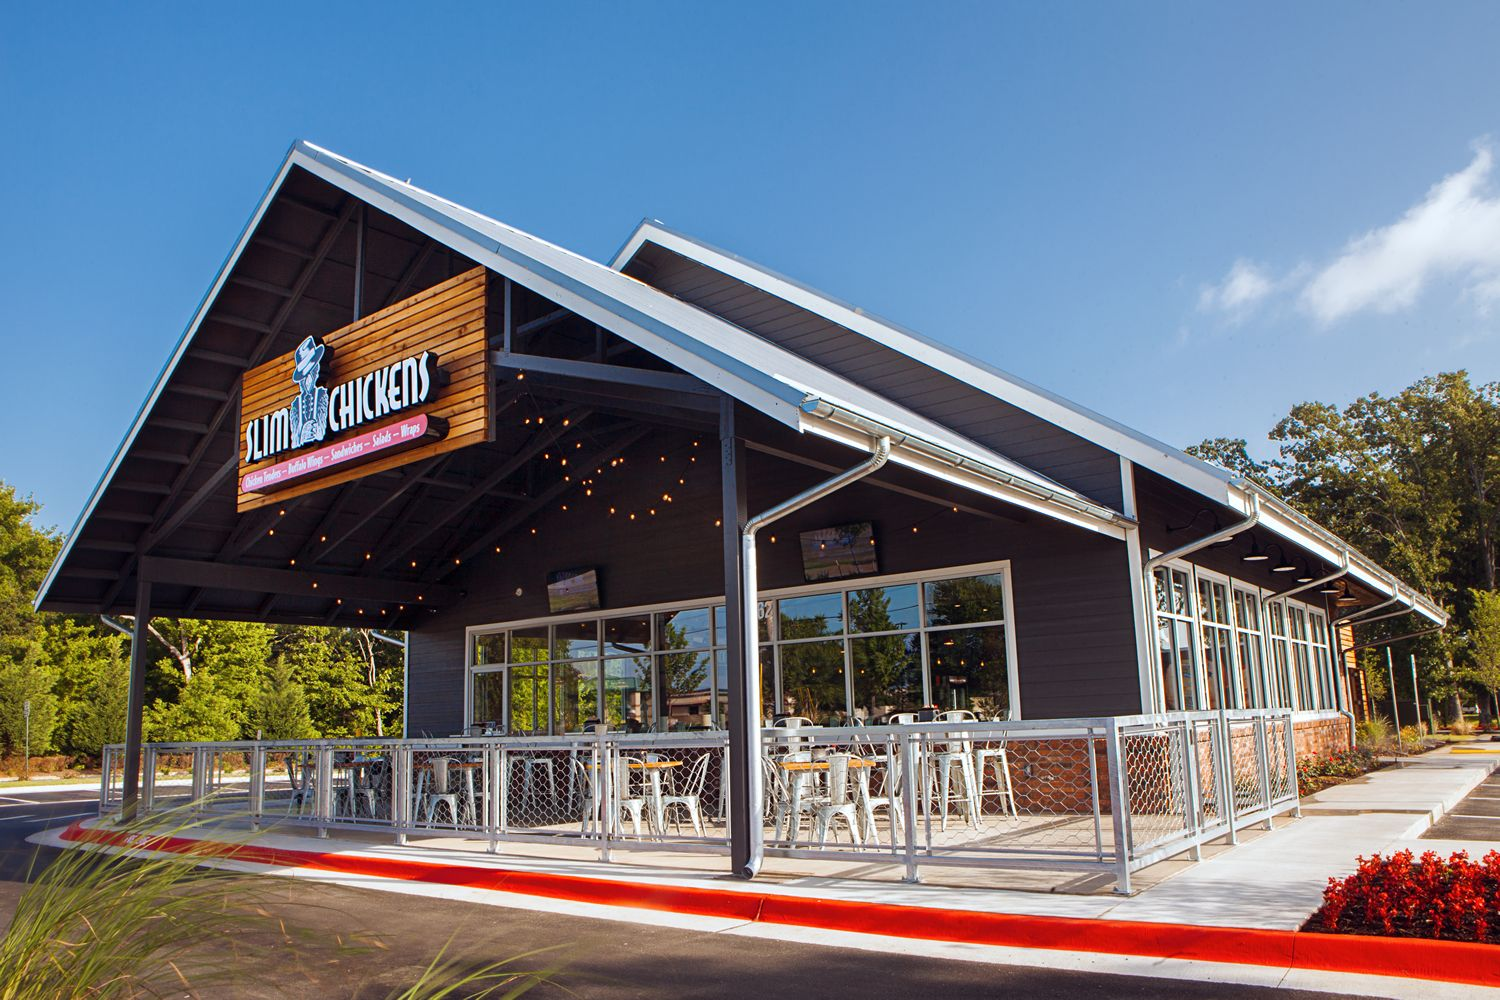 Slim Chickens Builds Presence in Kansas with Second Restaurant in Lawrence